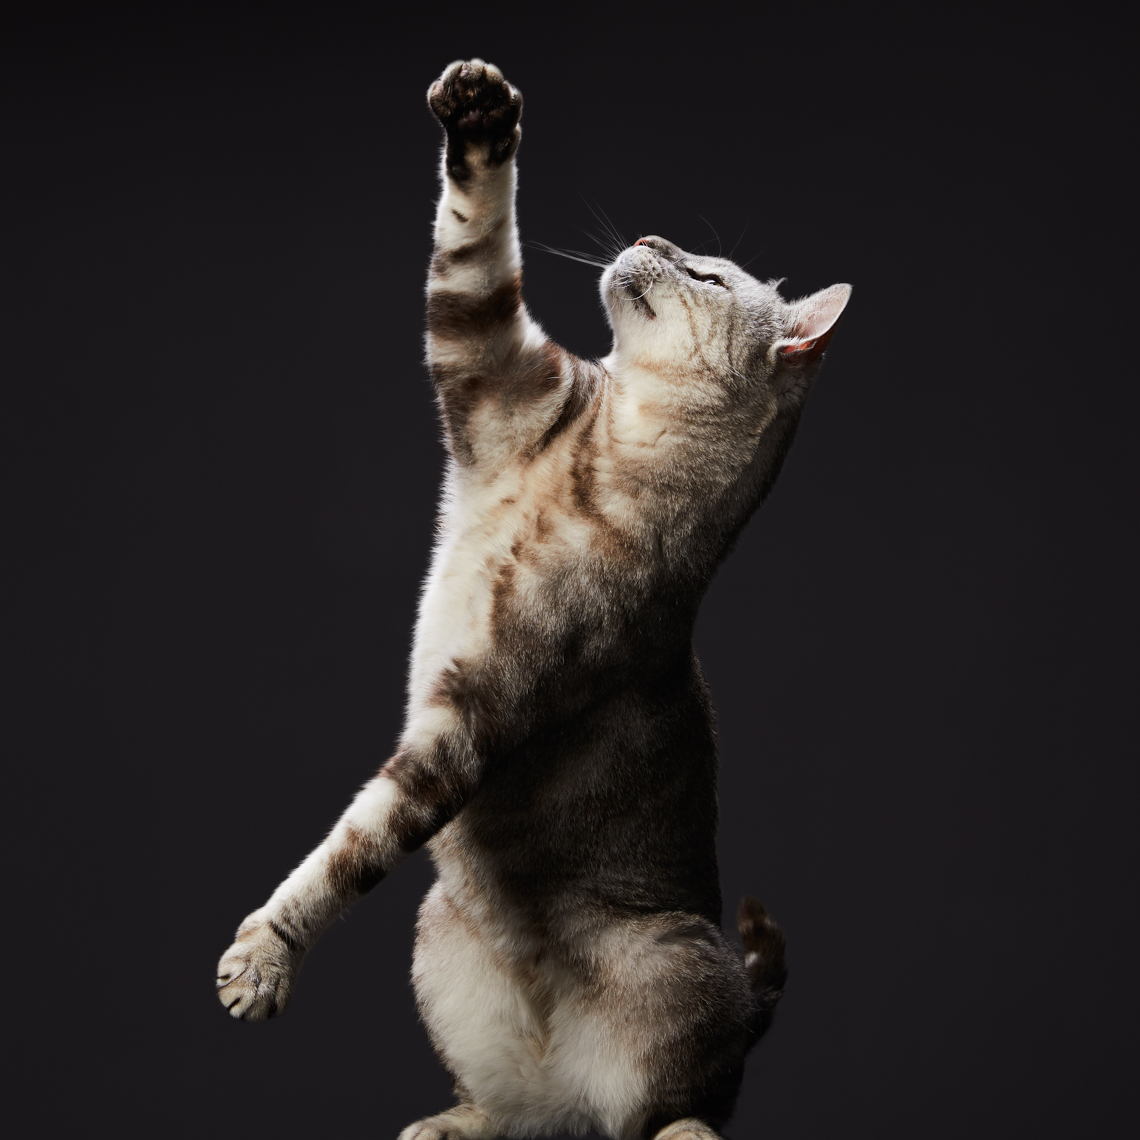 Studio Pet Photographer | Reaching Tabby Cat by Mark Rogers